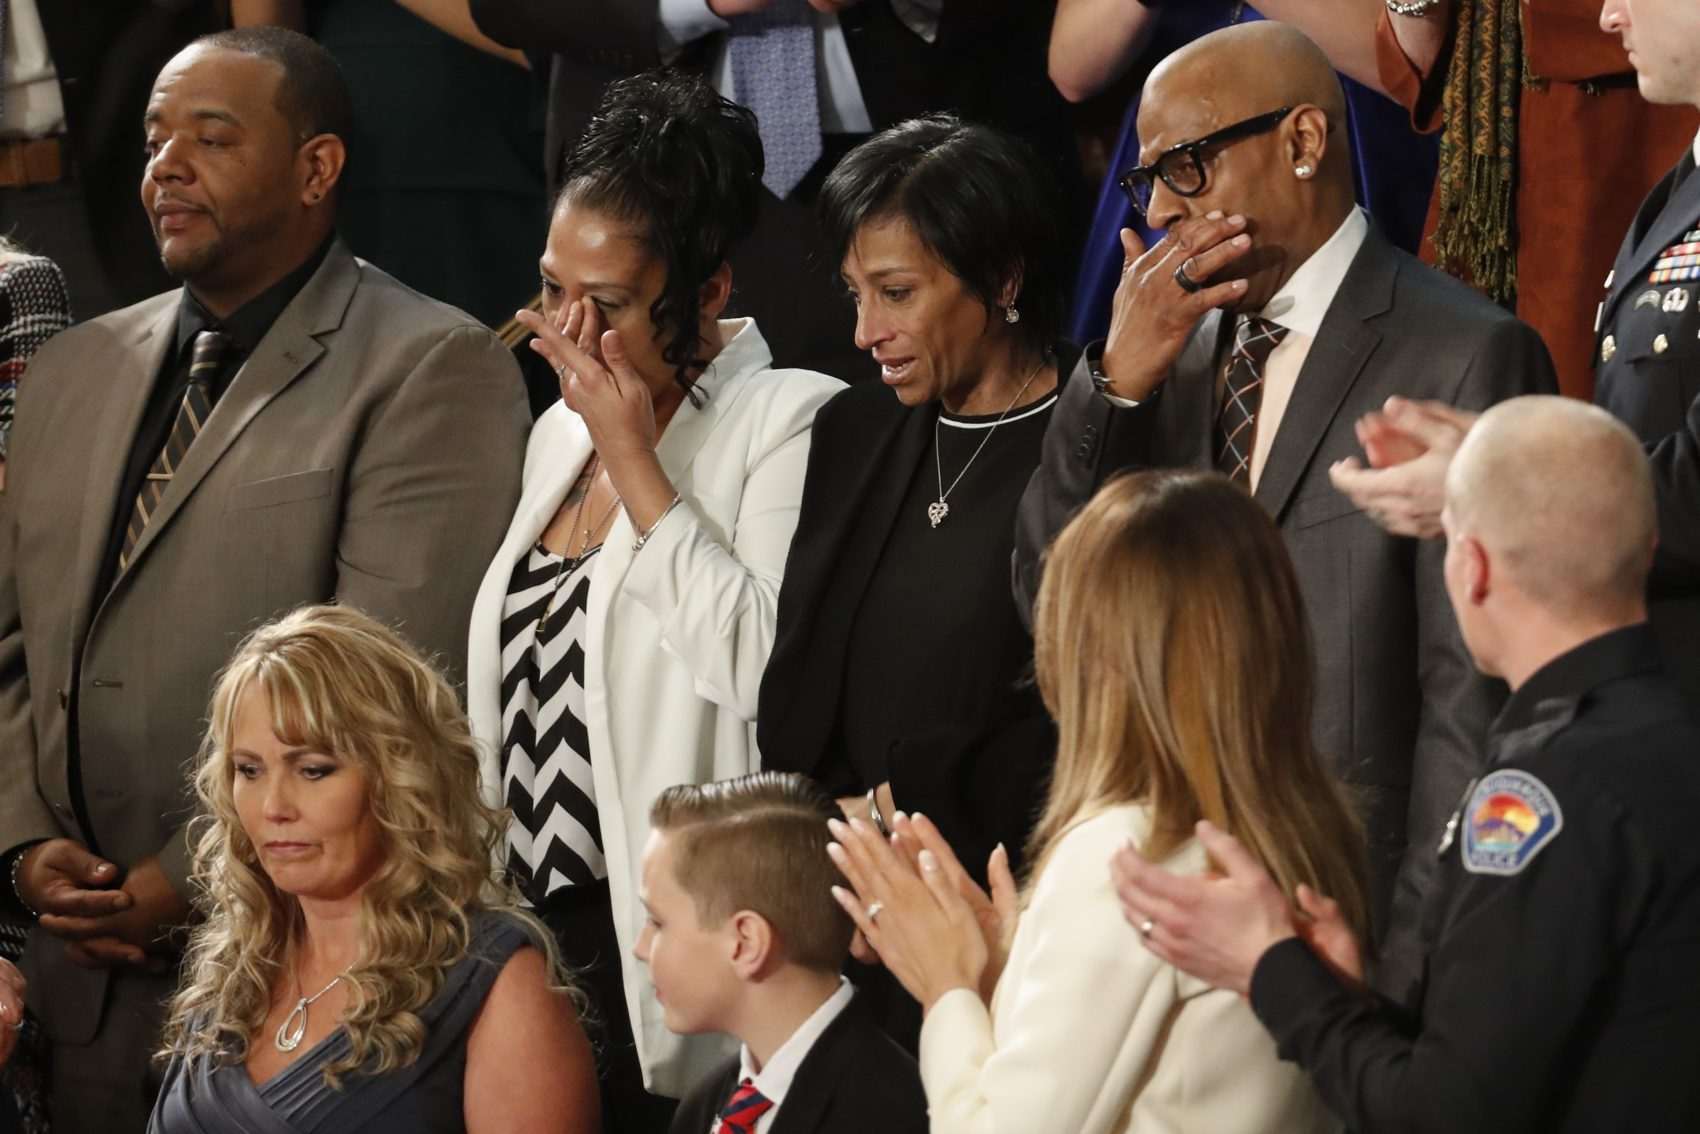 From top left, Robert Mickens, Elizabeth Alvarado, Evelyn Rodriguez, Freddy Cuevas, parents of two Long Island teenagers who were believed to have been killed by MS-13 gang members, during the State of the Union address. (Pablo Martinez Monsivais/AP)